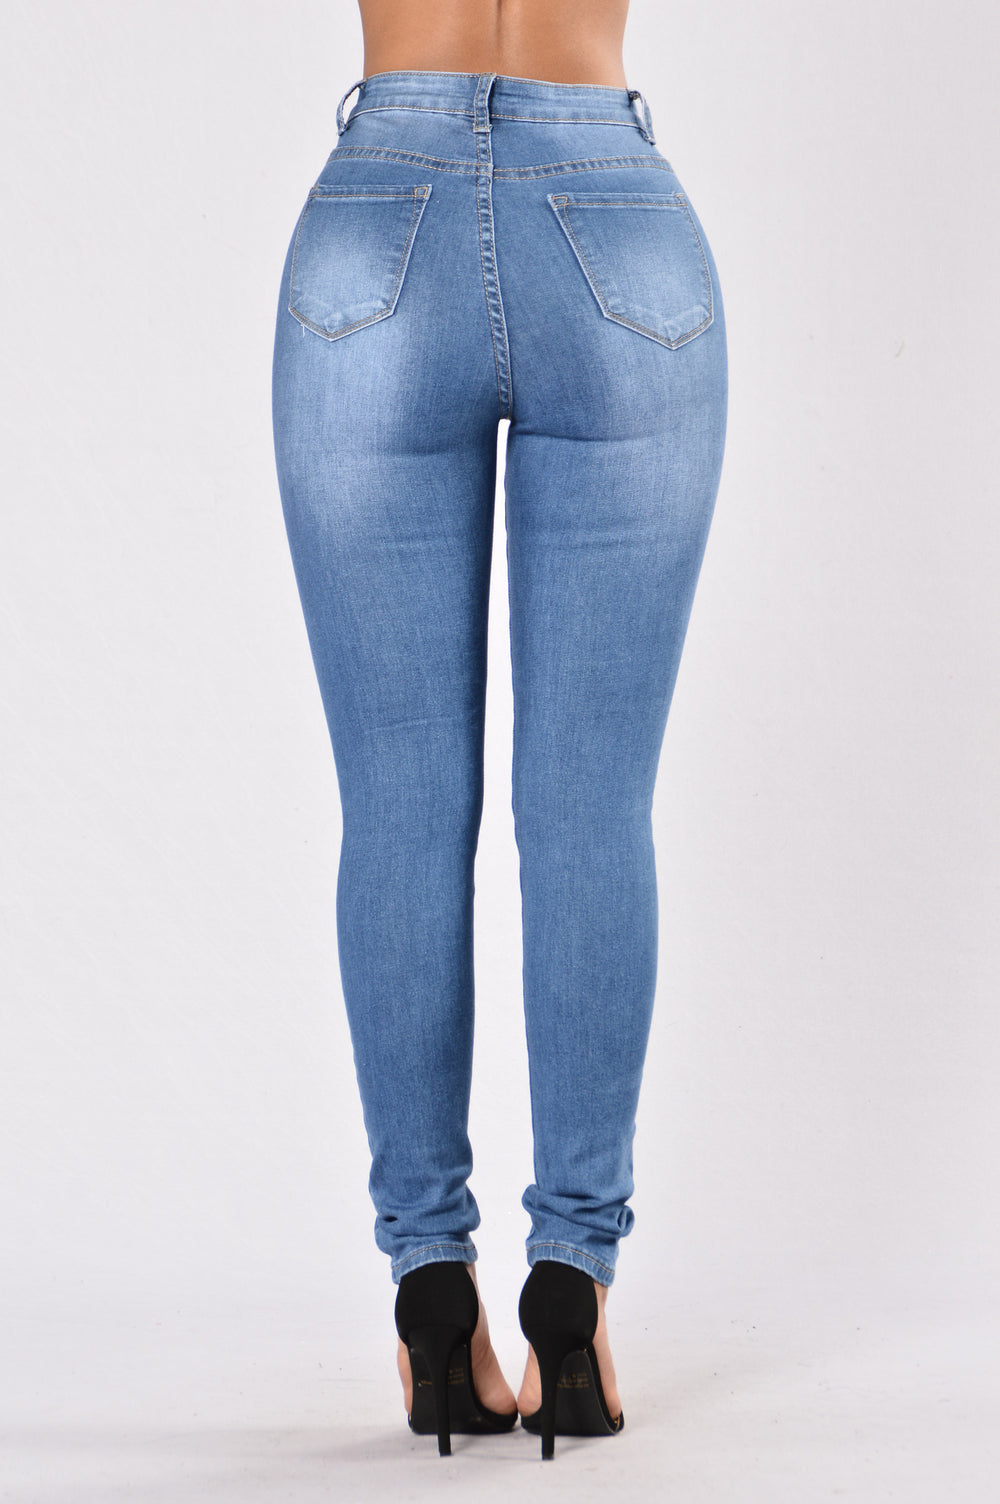 Beg For It High Rise Jean - Medium Wash